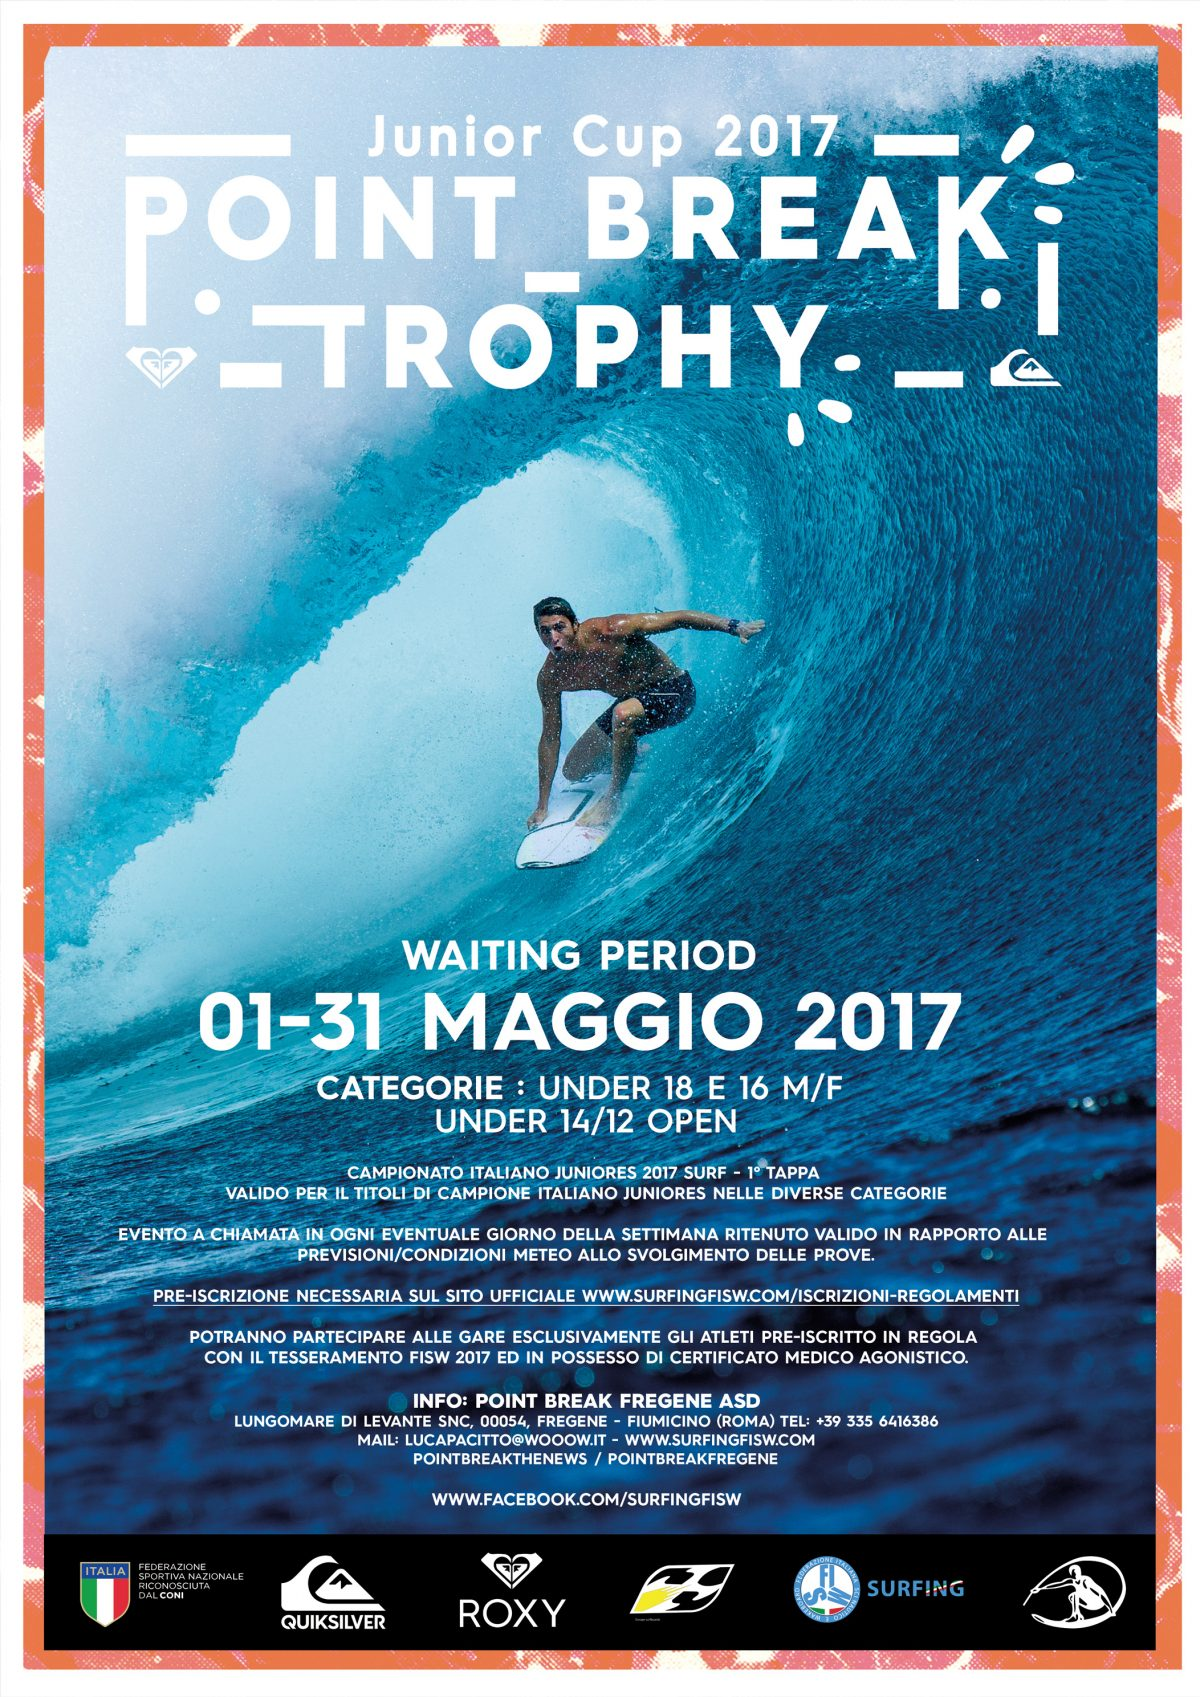 Semaforo rosso per il Point Break Junior Cup Trophy 2017